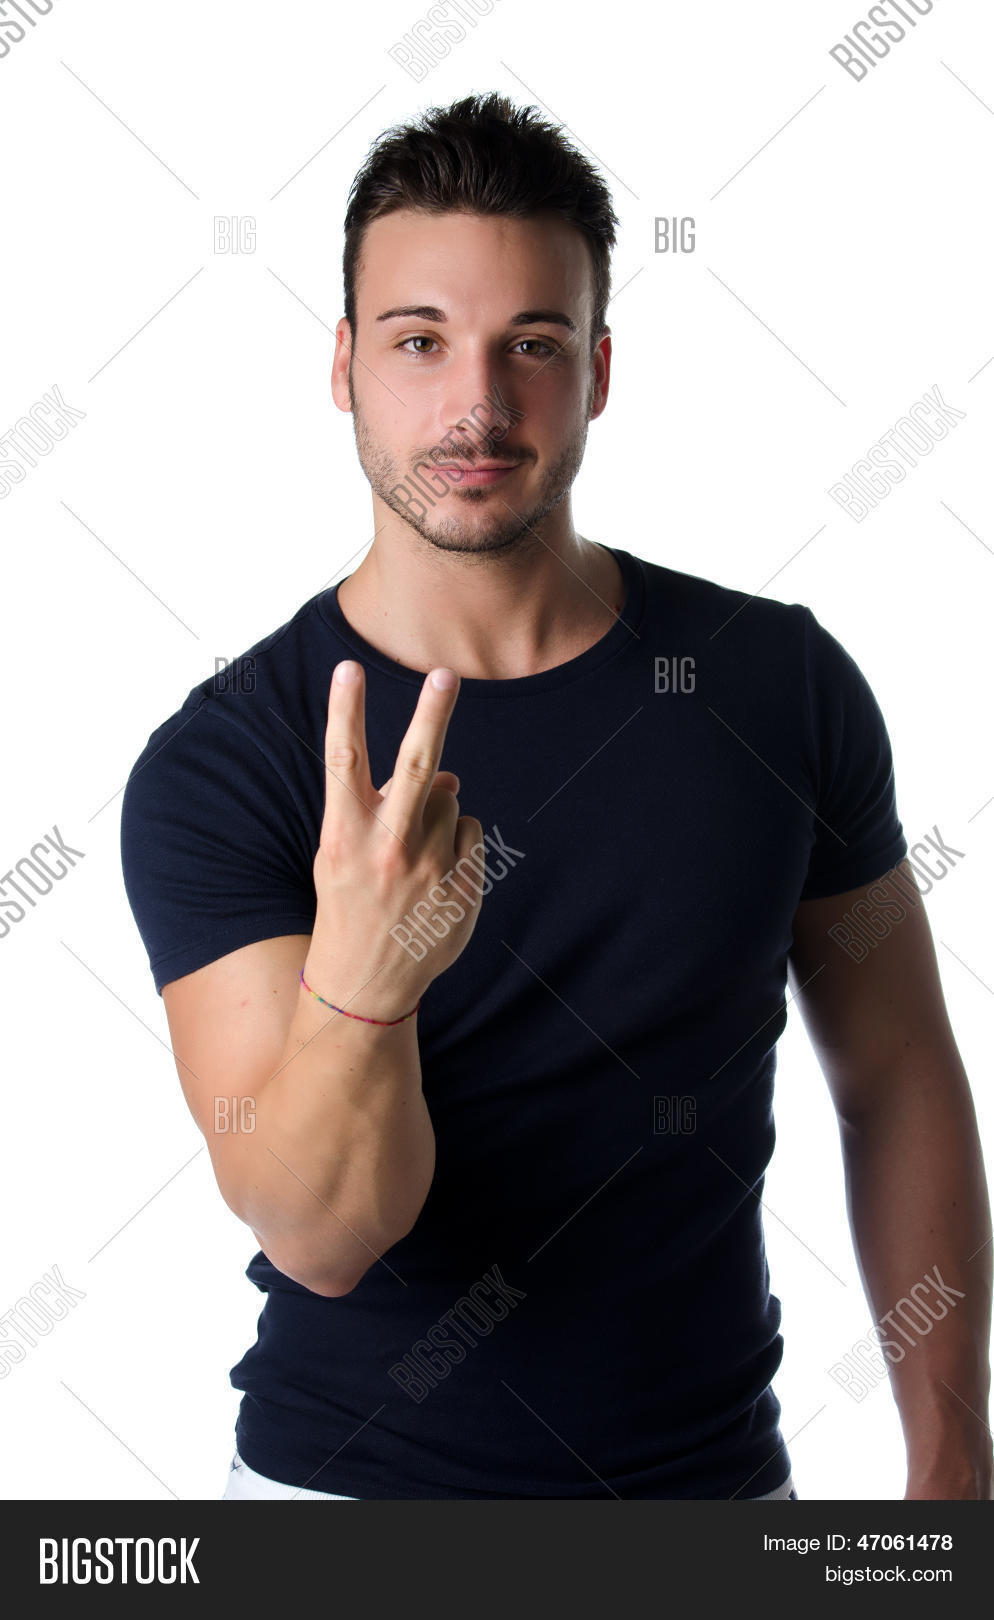 young man doing british sign fuck image & photo | bigstock